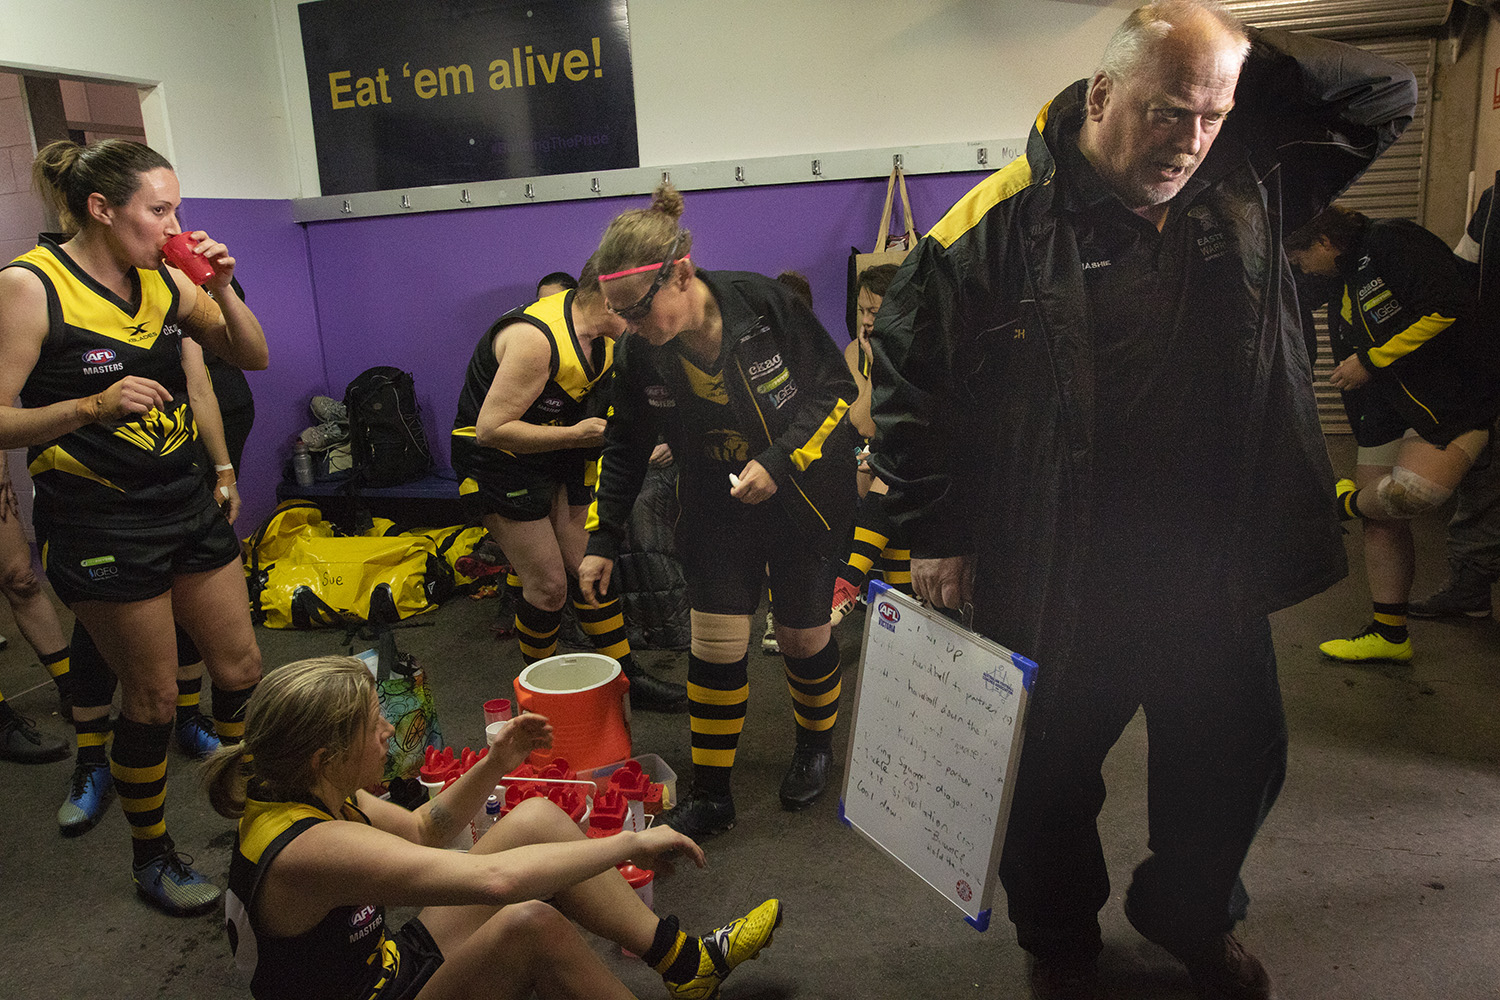 In the rooms at half time the players refresh and steel themselves for a return to action. Hay is a left, refuelling. Coach Peter 'Pants' Nash (right) says the season taught him a lot in terms of technique and management.